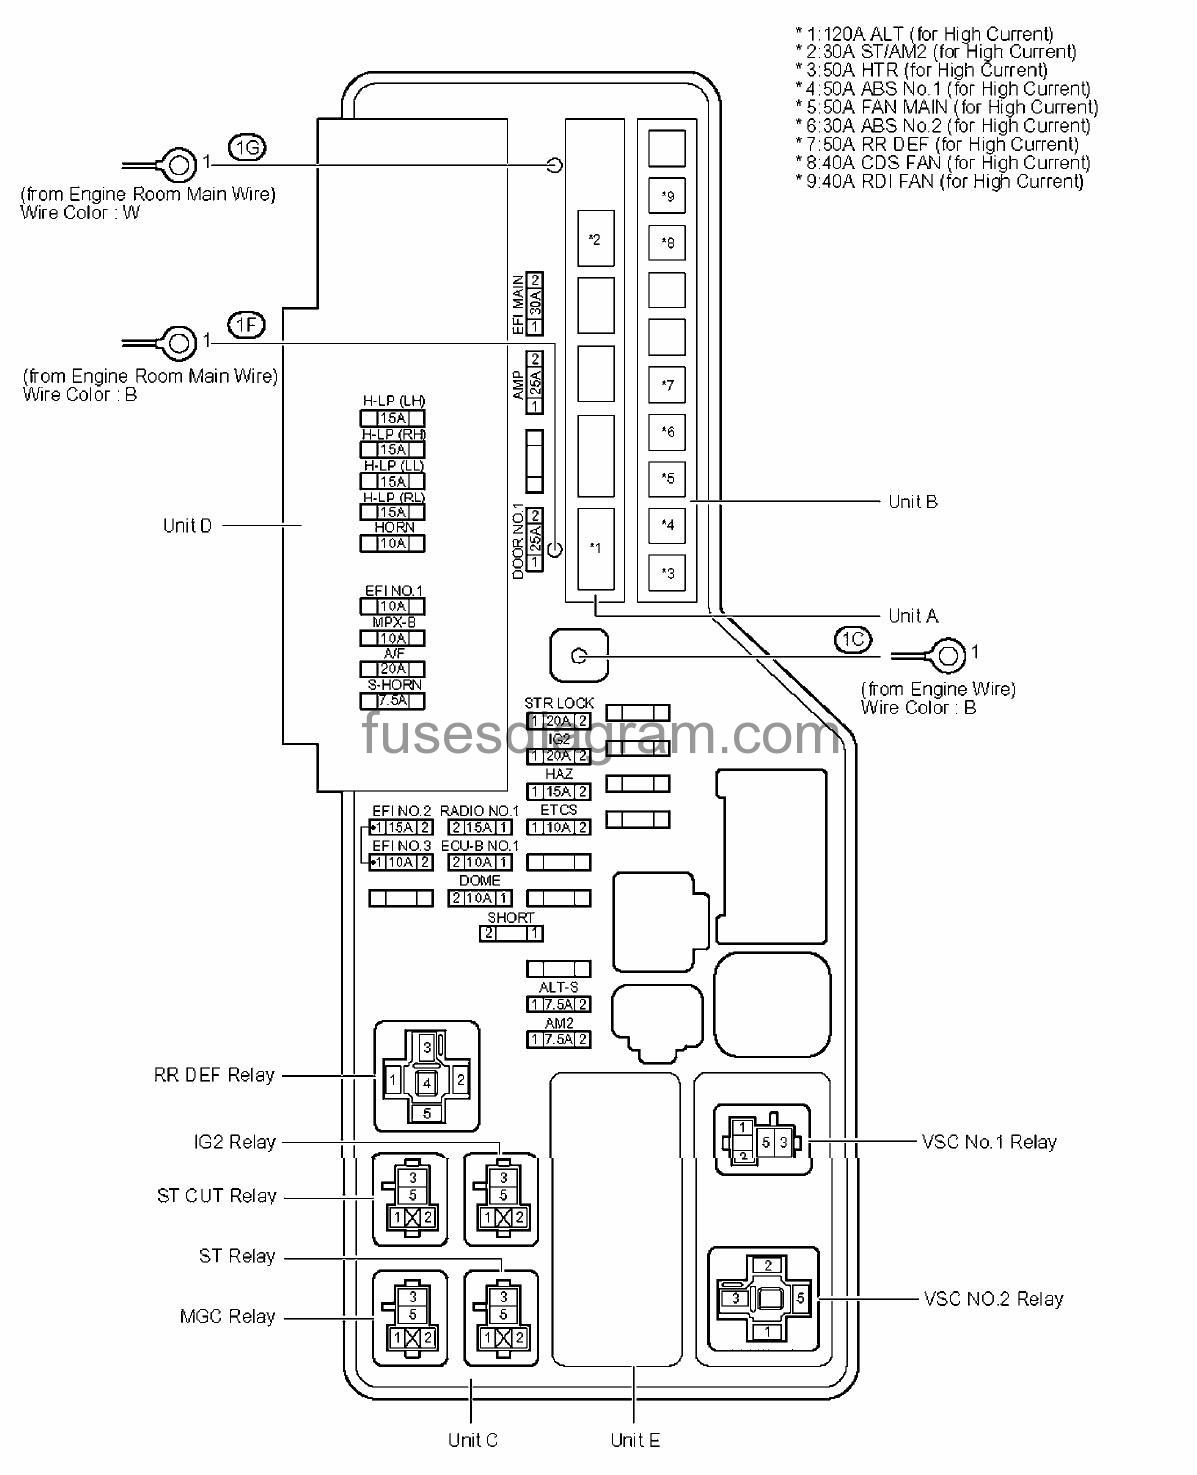 2006 camry fuse box diagram wiring diagram2006 camry fuse box diagram